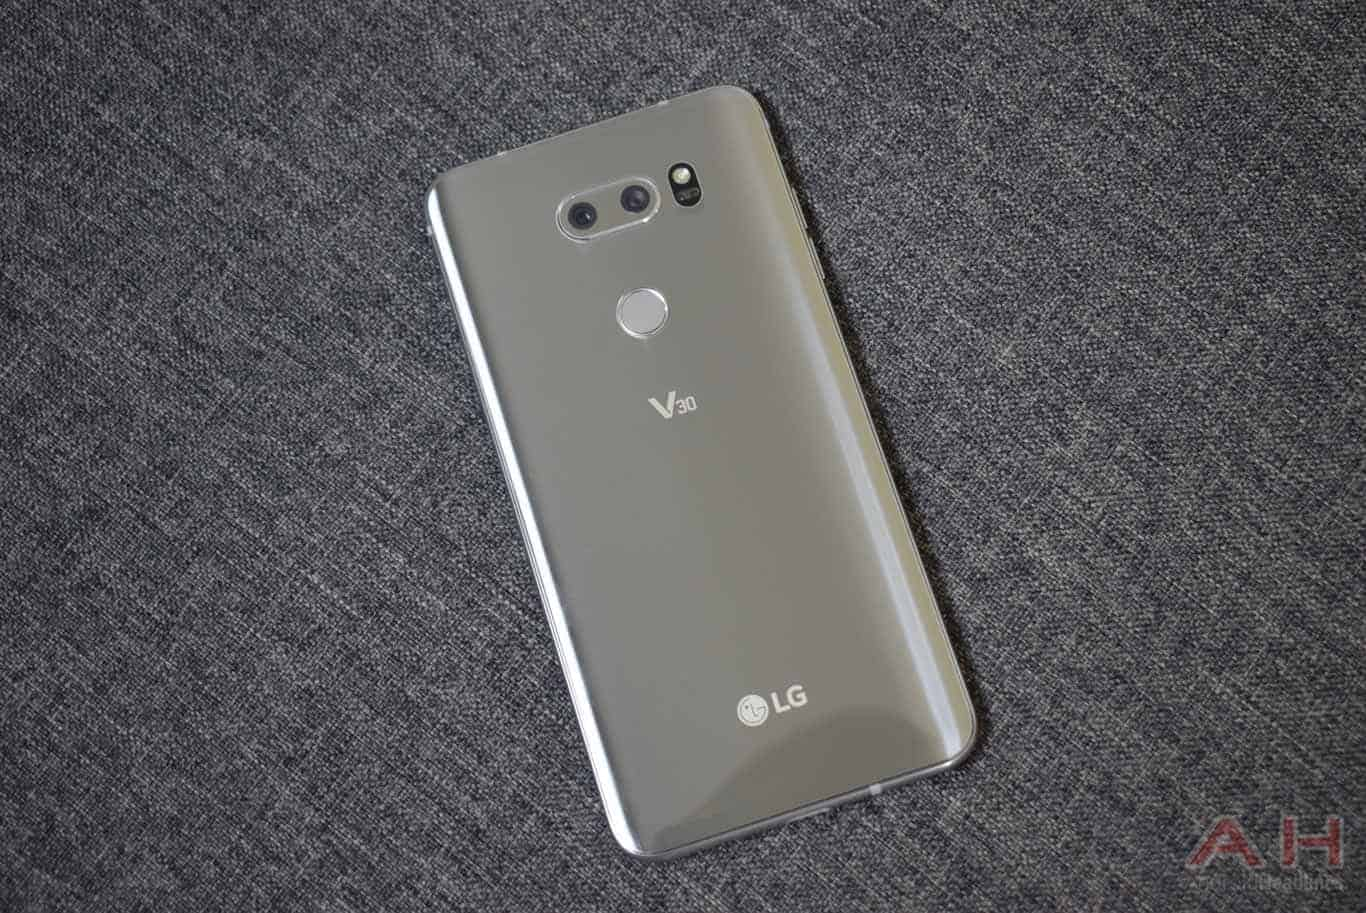 LG V30 Features Face, Voice and Fingerprint Biometrics